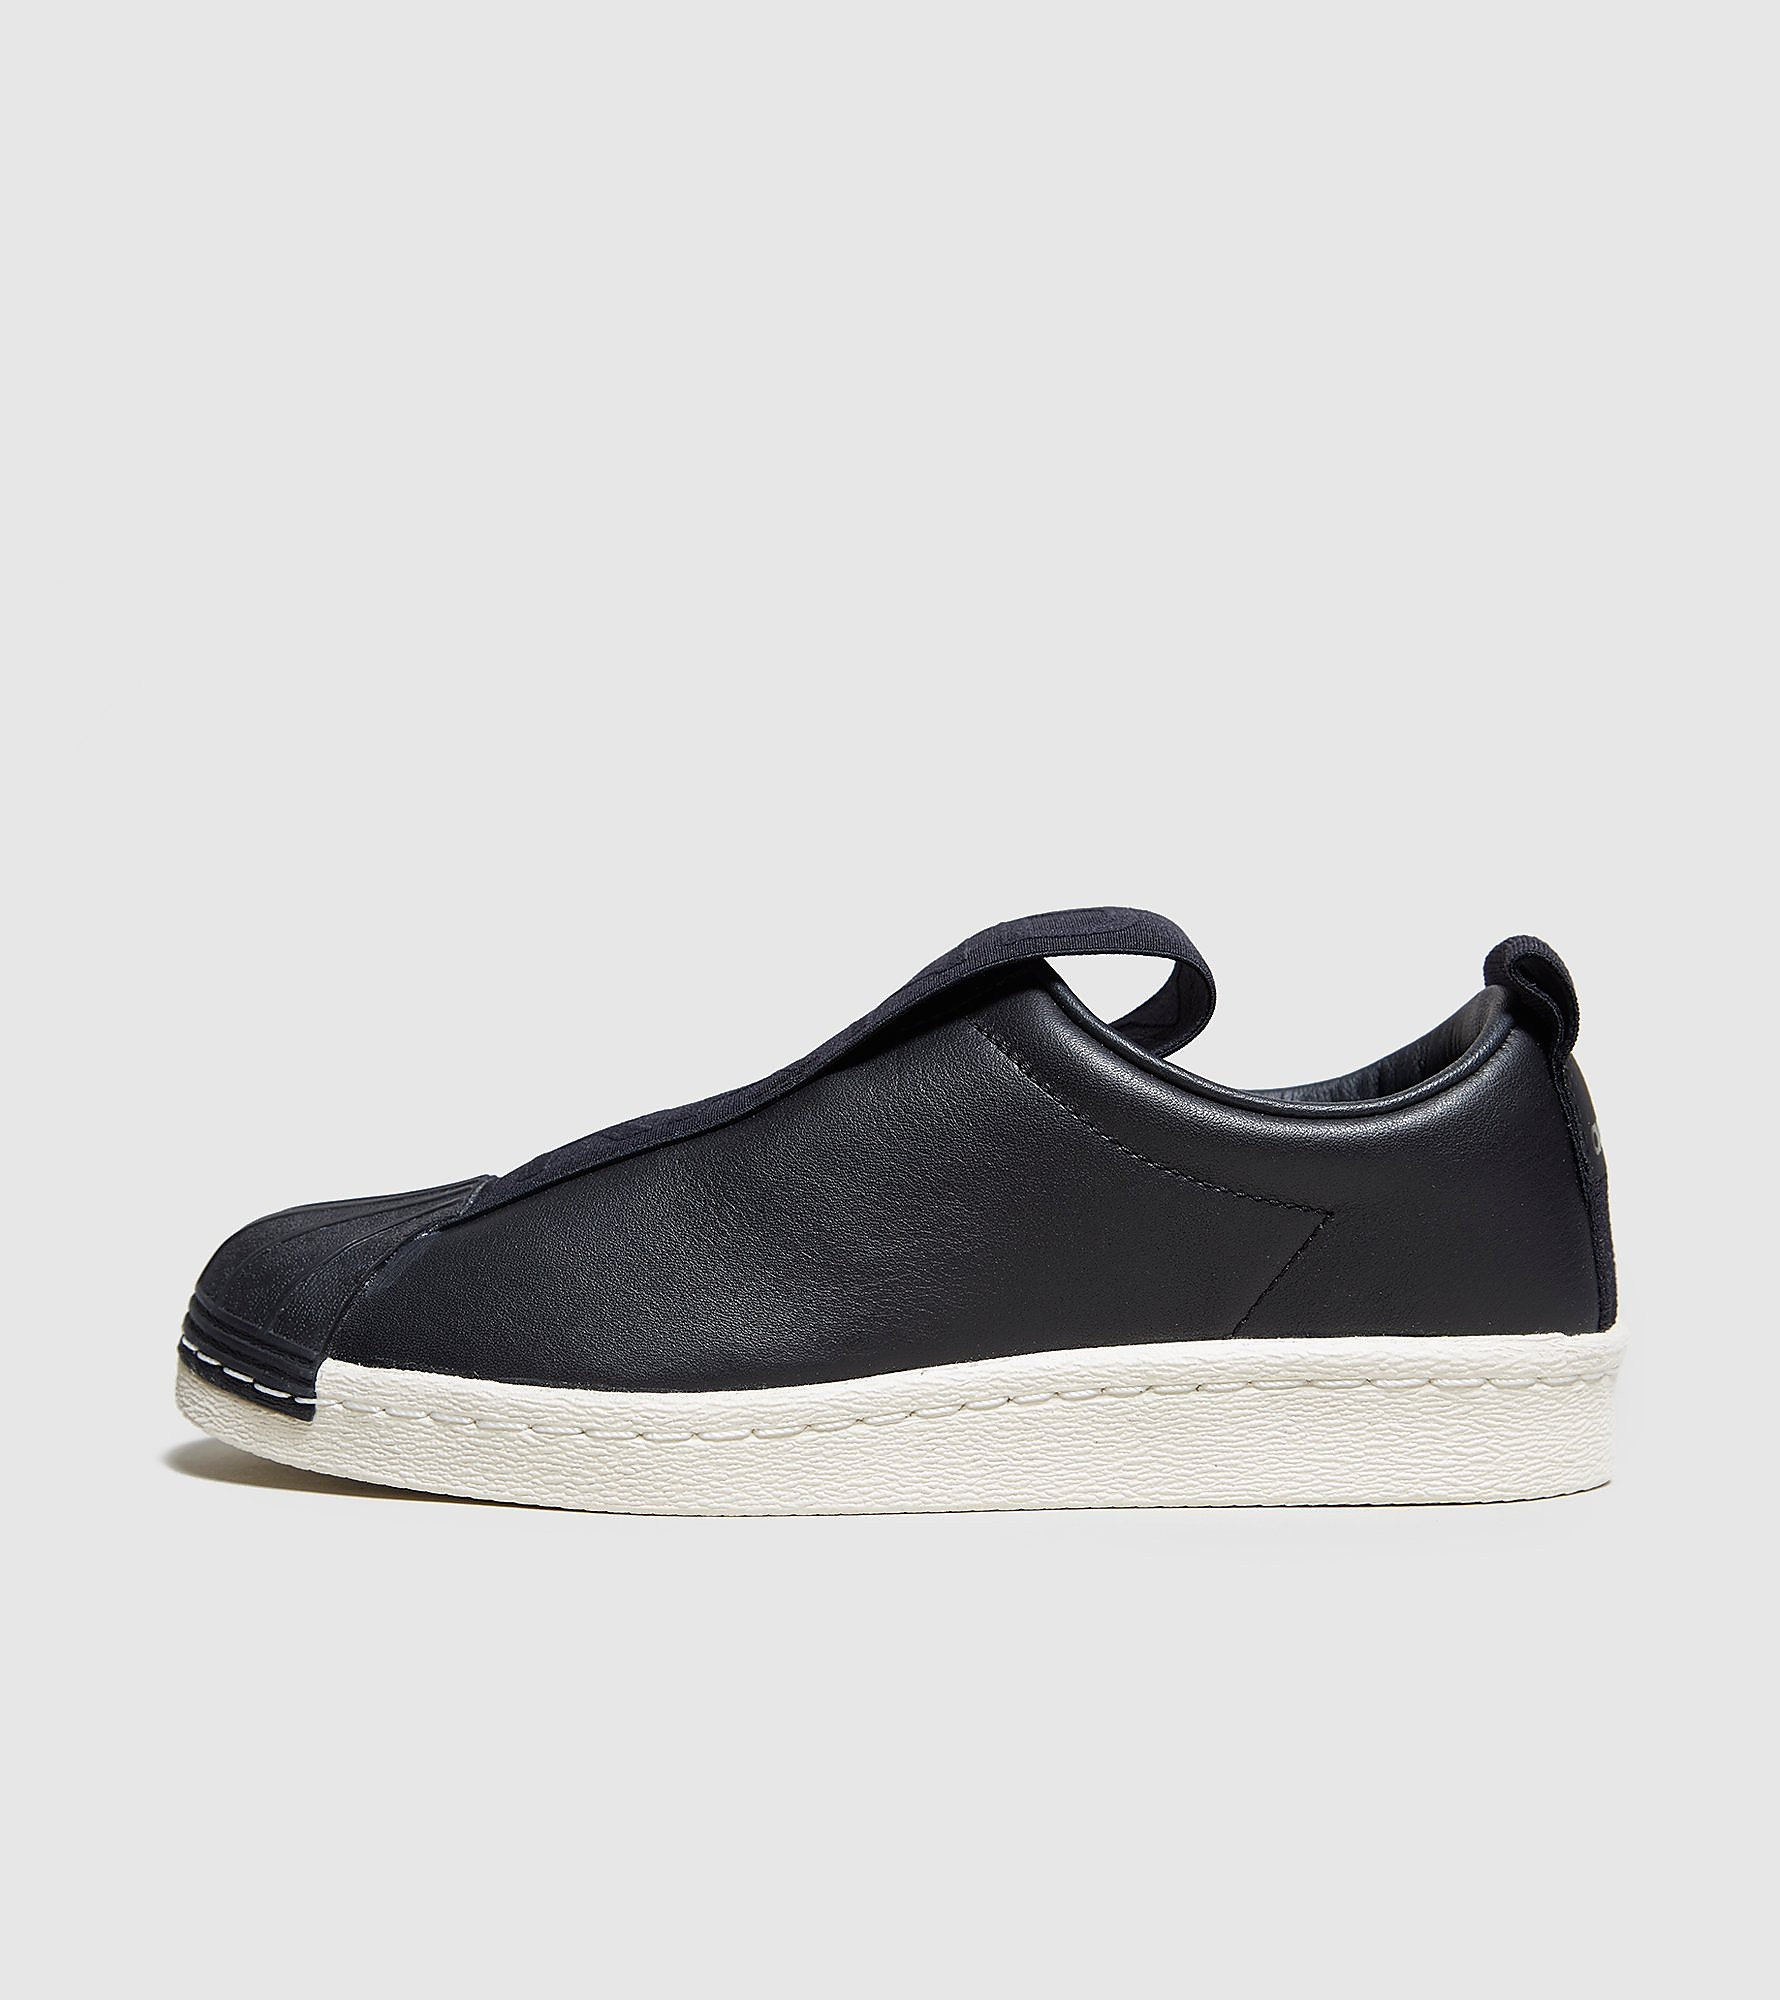 adidas Originals Superstar BW35 Women's